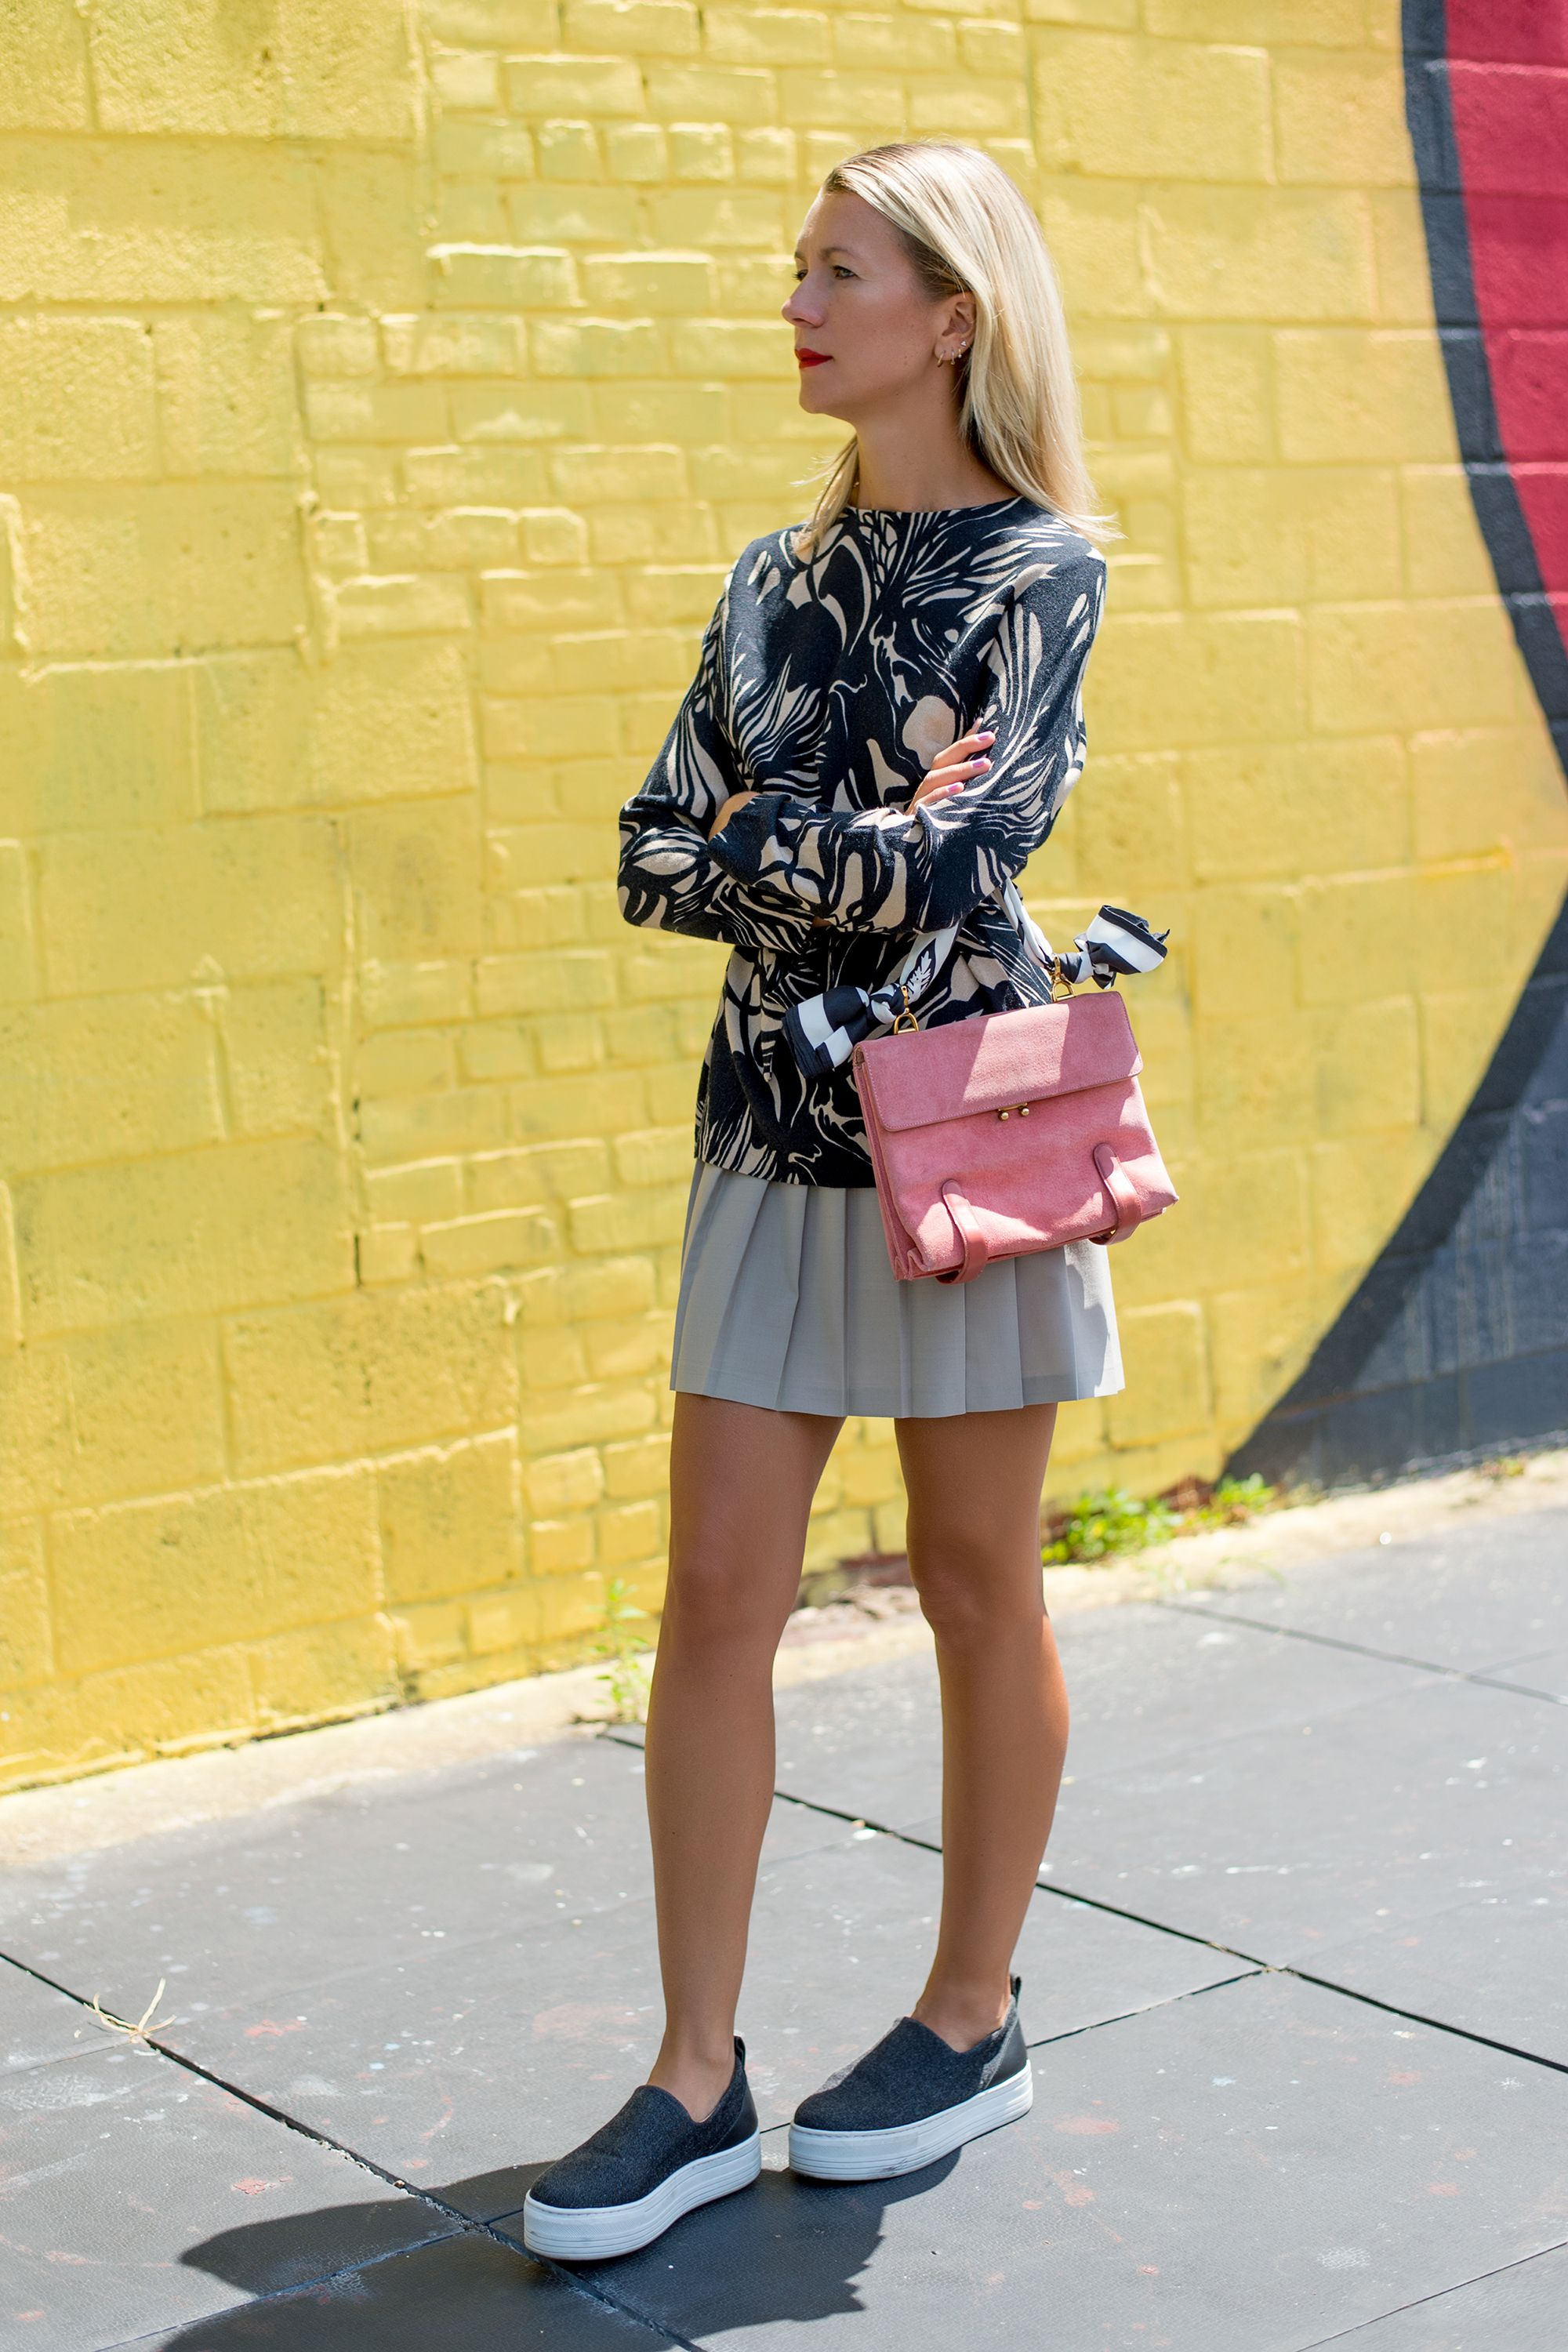 "<p class=""MsoNormal"" style=""margin-bottom:10.0pt""><strong>Harper's BAZAAR: When did you first fall in love with vintage clothing?</strong><o:p></o:p></p><p class=""MsoNormal"" style=""margin-bottom:10.0pt""><strong>Natalie Joos:</strong> I remember my first pair of vintage shoes, I think that was the first time. They were 1960's platforms and they were dead stock.  I pretty much wore them every day. And I was 16. <o:p></o:p></p><p><em>Vintage <a href=""http://shop.talesofendearment.com/collections/frontpage/products/60s-tunic"" target=""_blank"">Tunic</a></em><em>, $160 </em><br></p>"